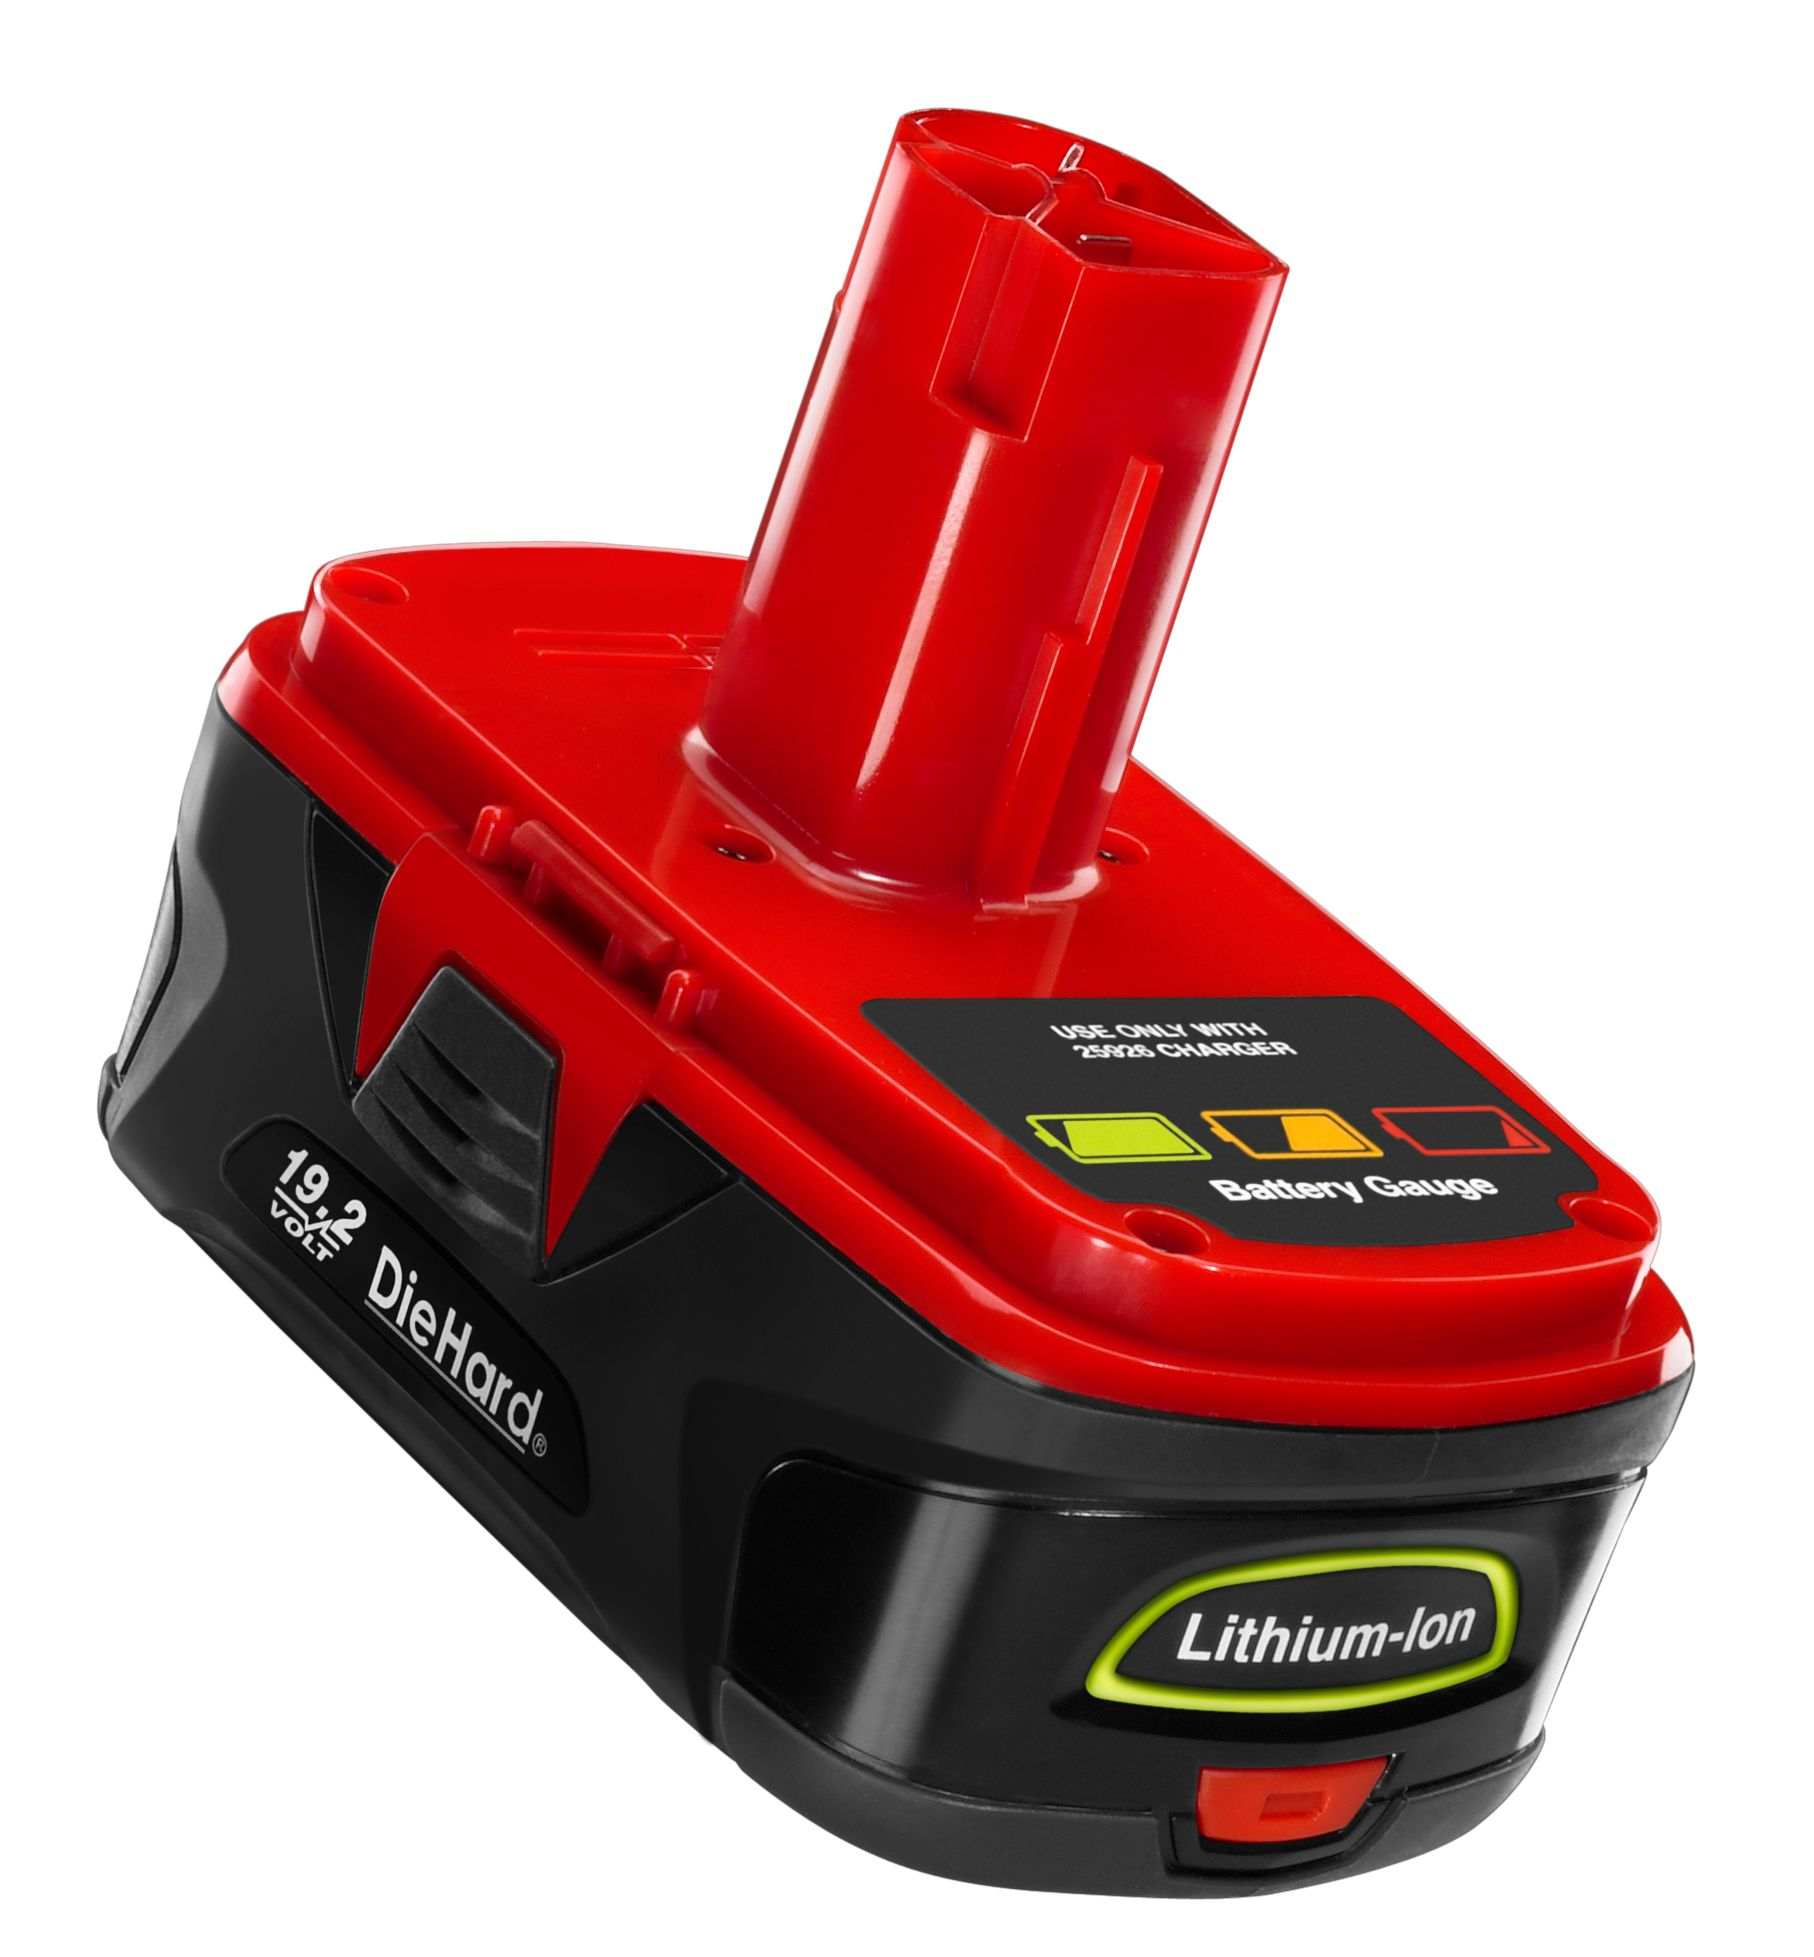 Craftsman C3 19.2-Volt Lithium-Ion Battery Pack with Charger 25928